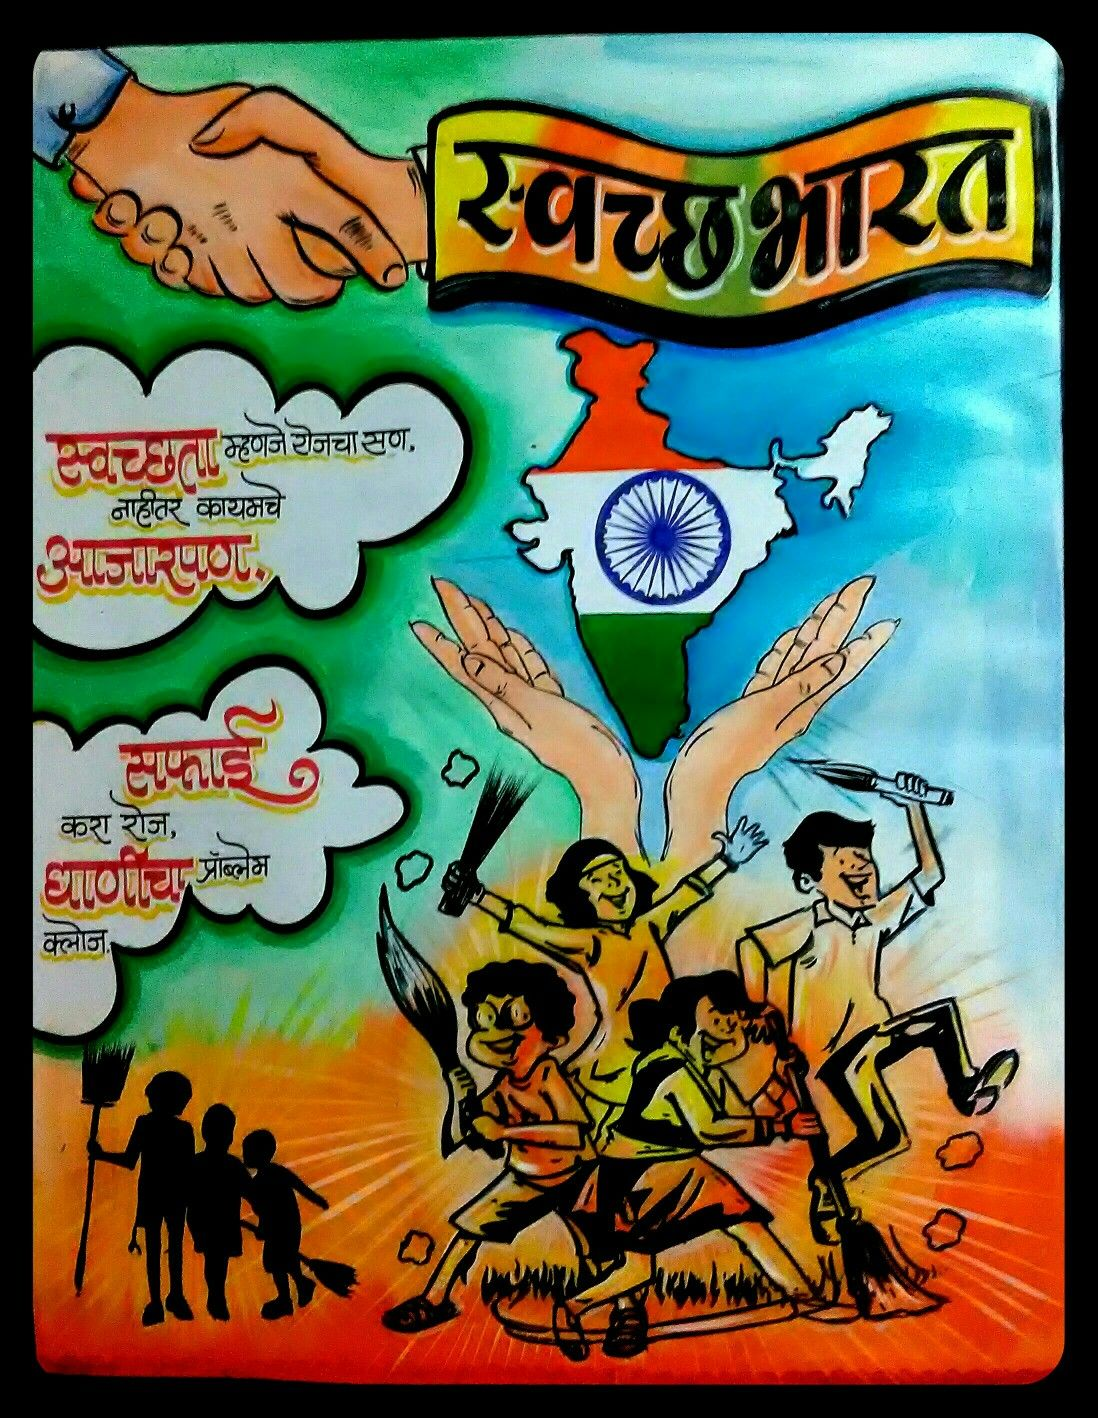 Pnp primary school drowing swach bharat   Abstract art for ...